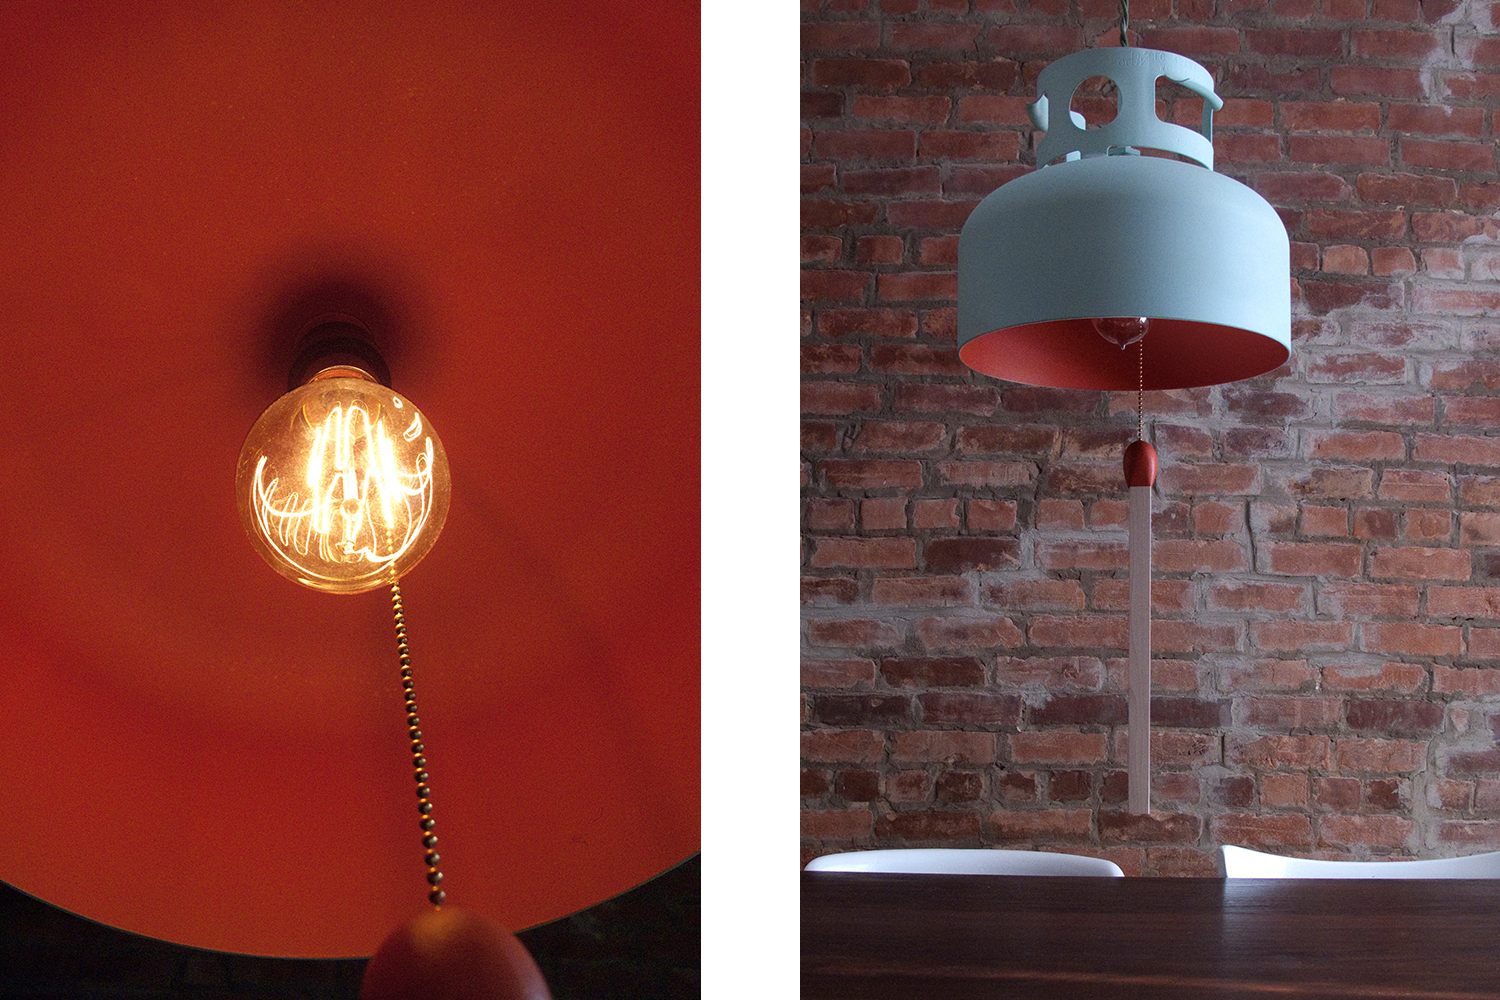 Lamp made from a propane tank. A match in giant format is suspended in the center. Exterior painted blue gray and interior finished red ocher.